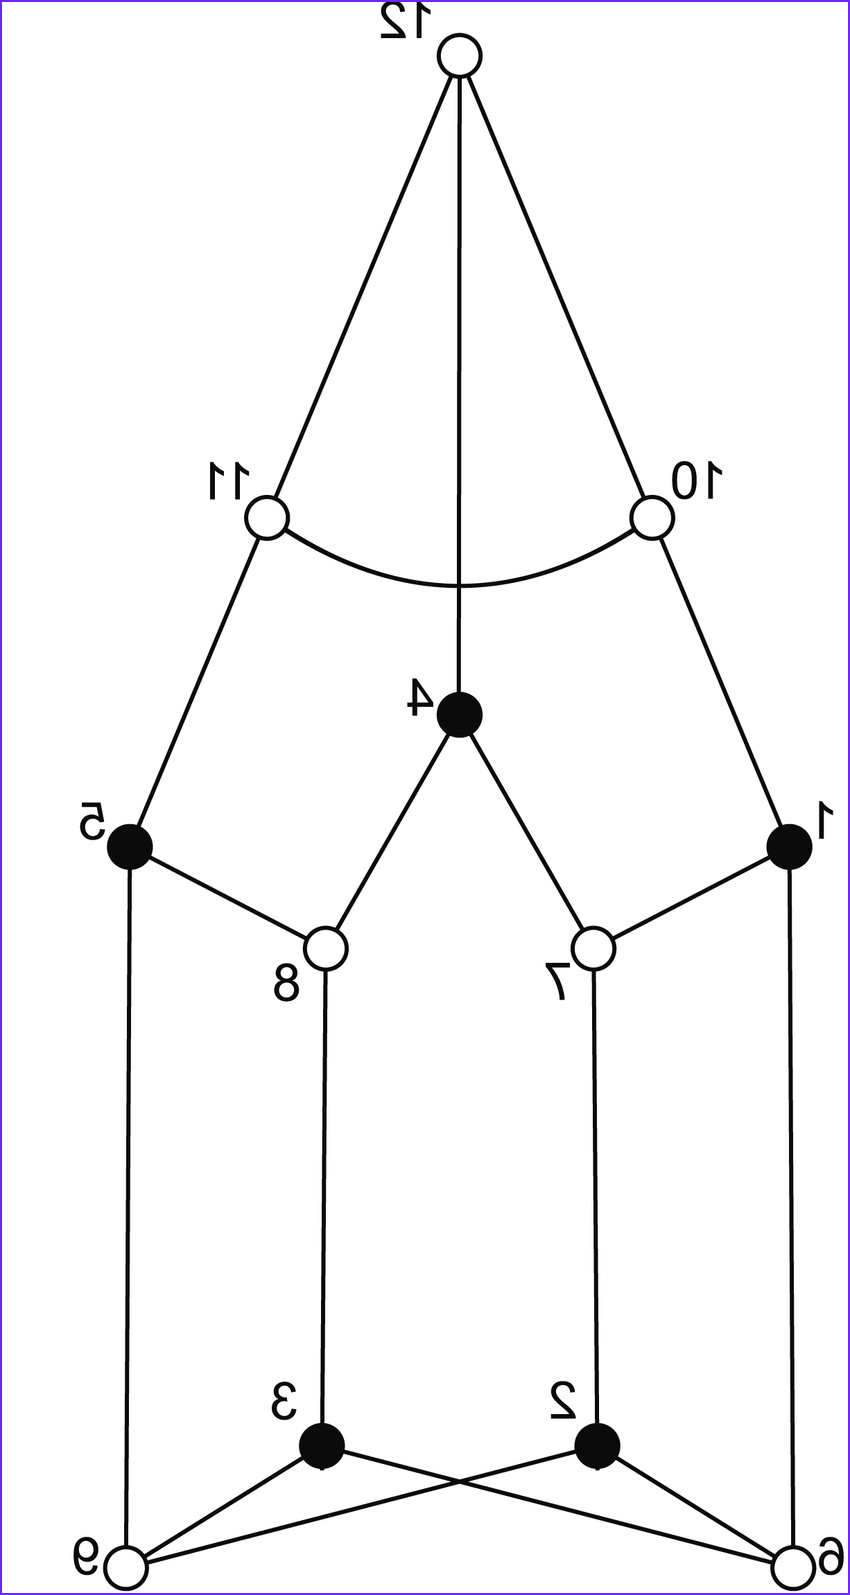 Example of a graph Q for which a greedy algorithm which repeatedly eliminates the closed fig2